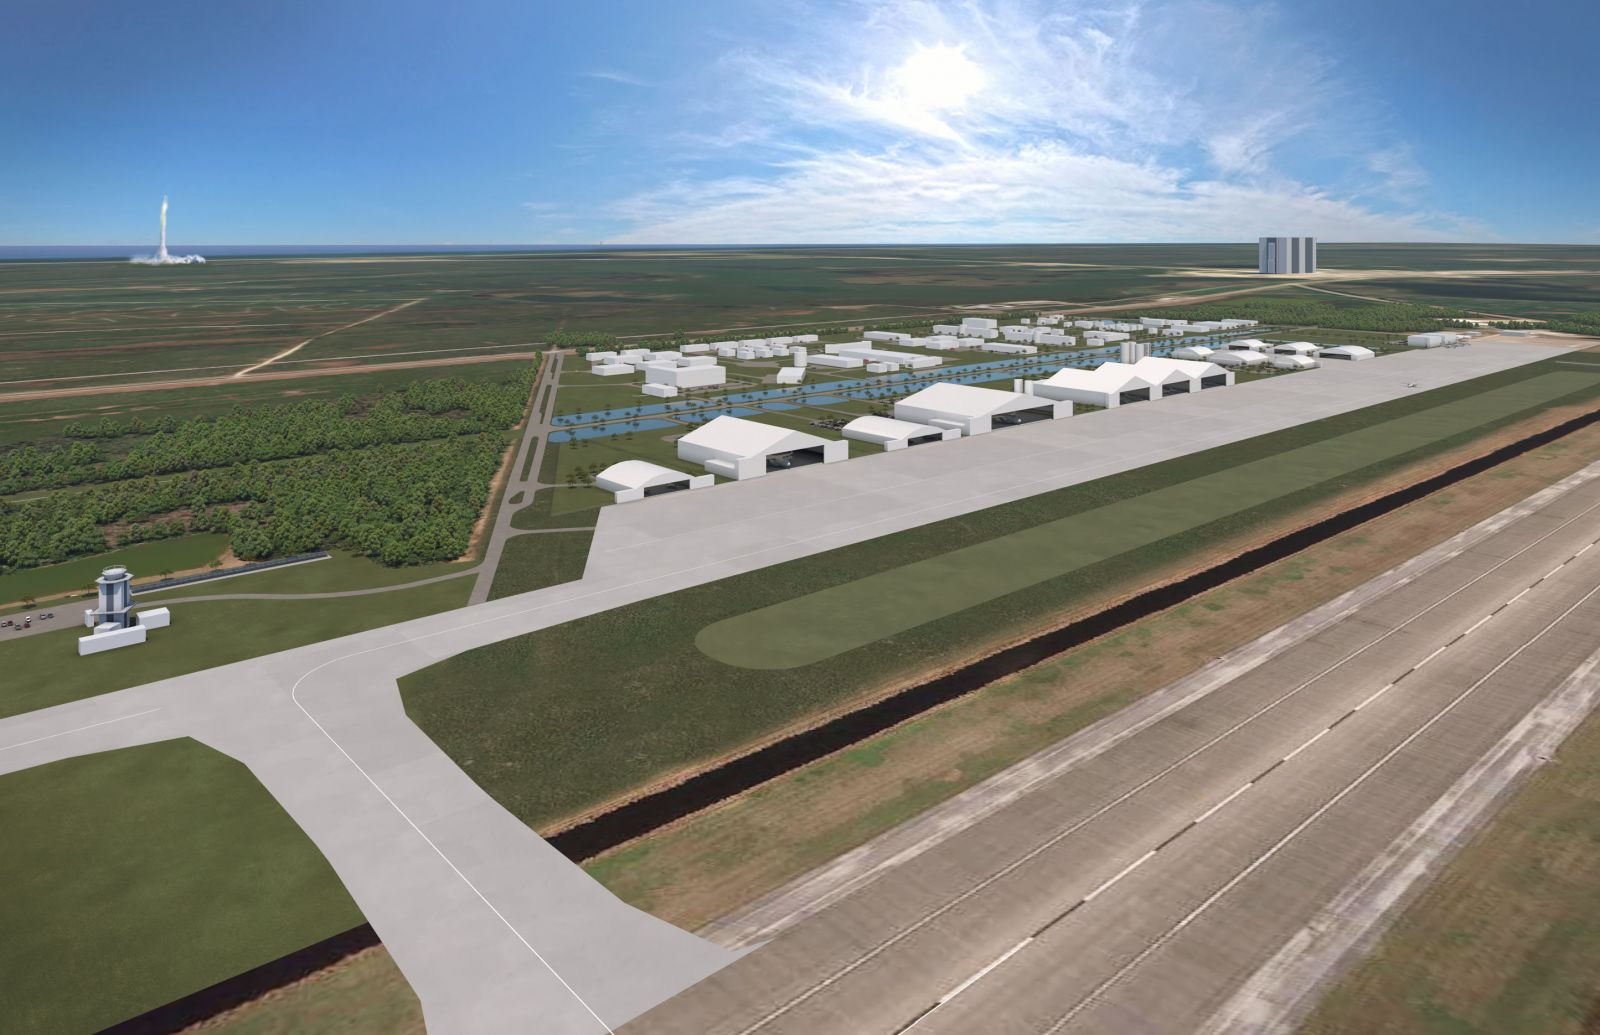 """A 3D render of the proposed """"utility corridor"""" that is being built at the Launch and Landing Facility, which was formerly known as the Shuttle Landing Facility. Credit: Space Florida"""